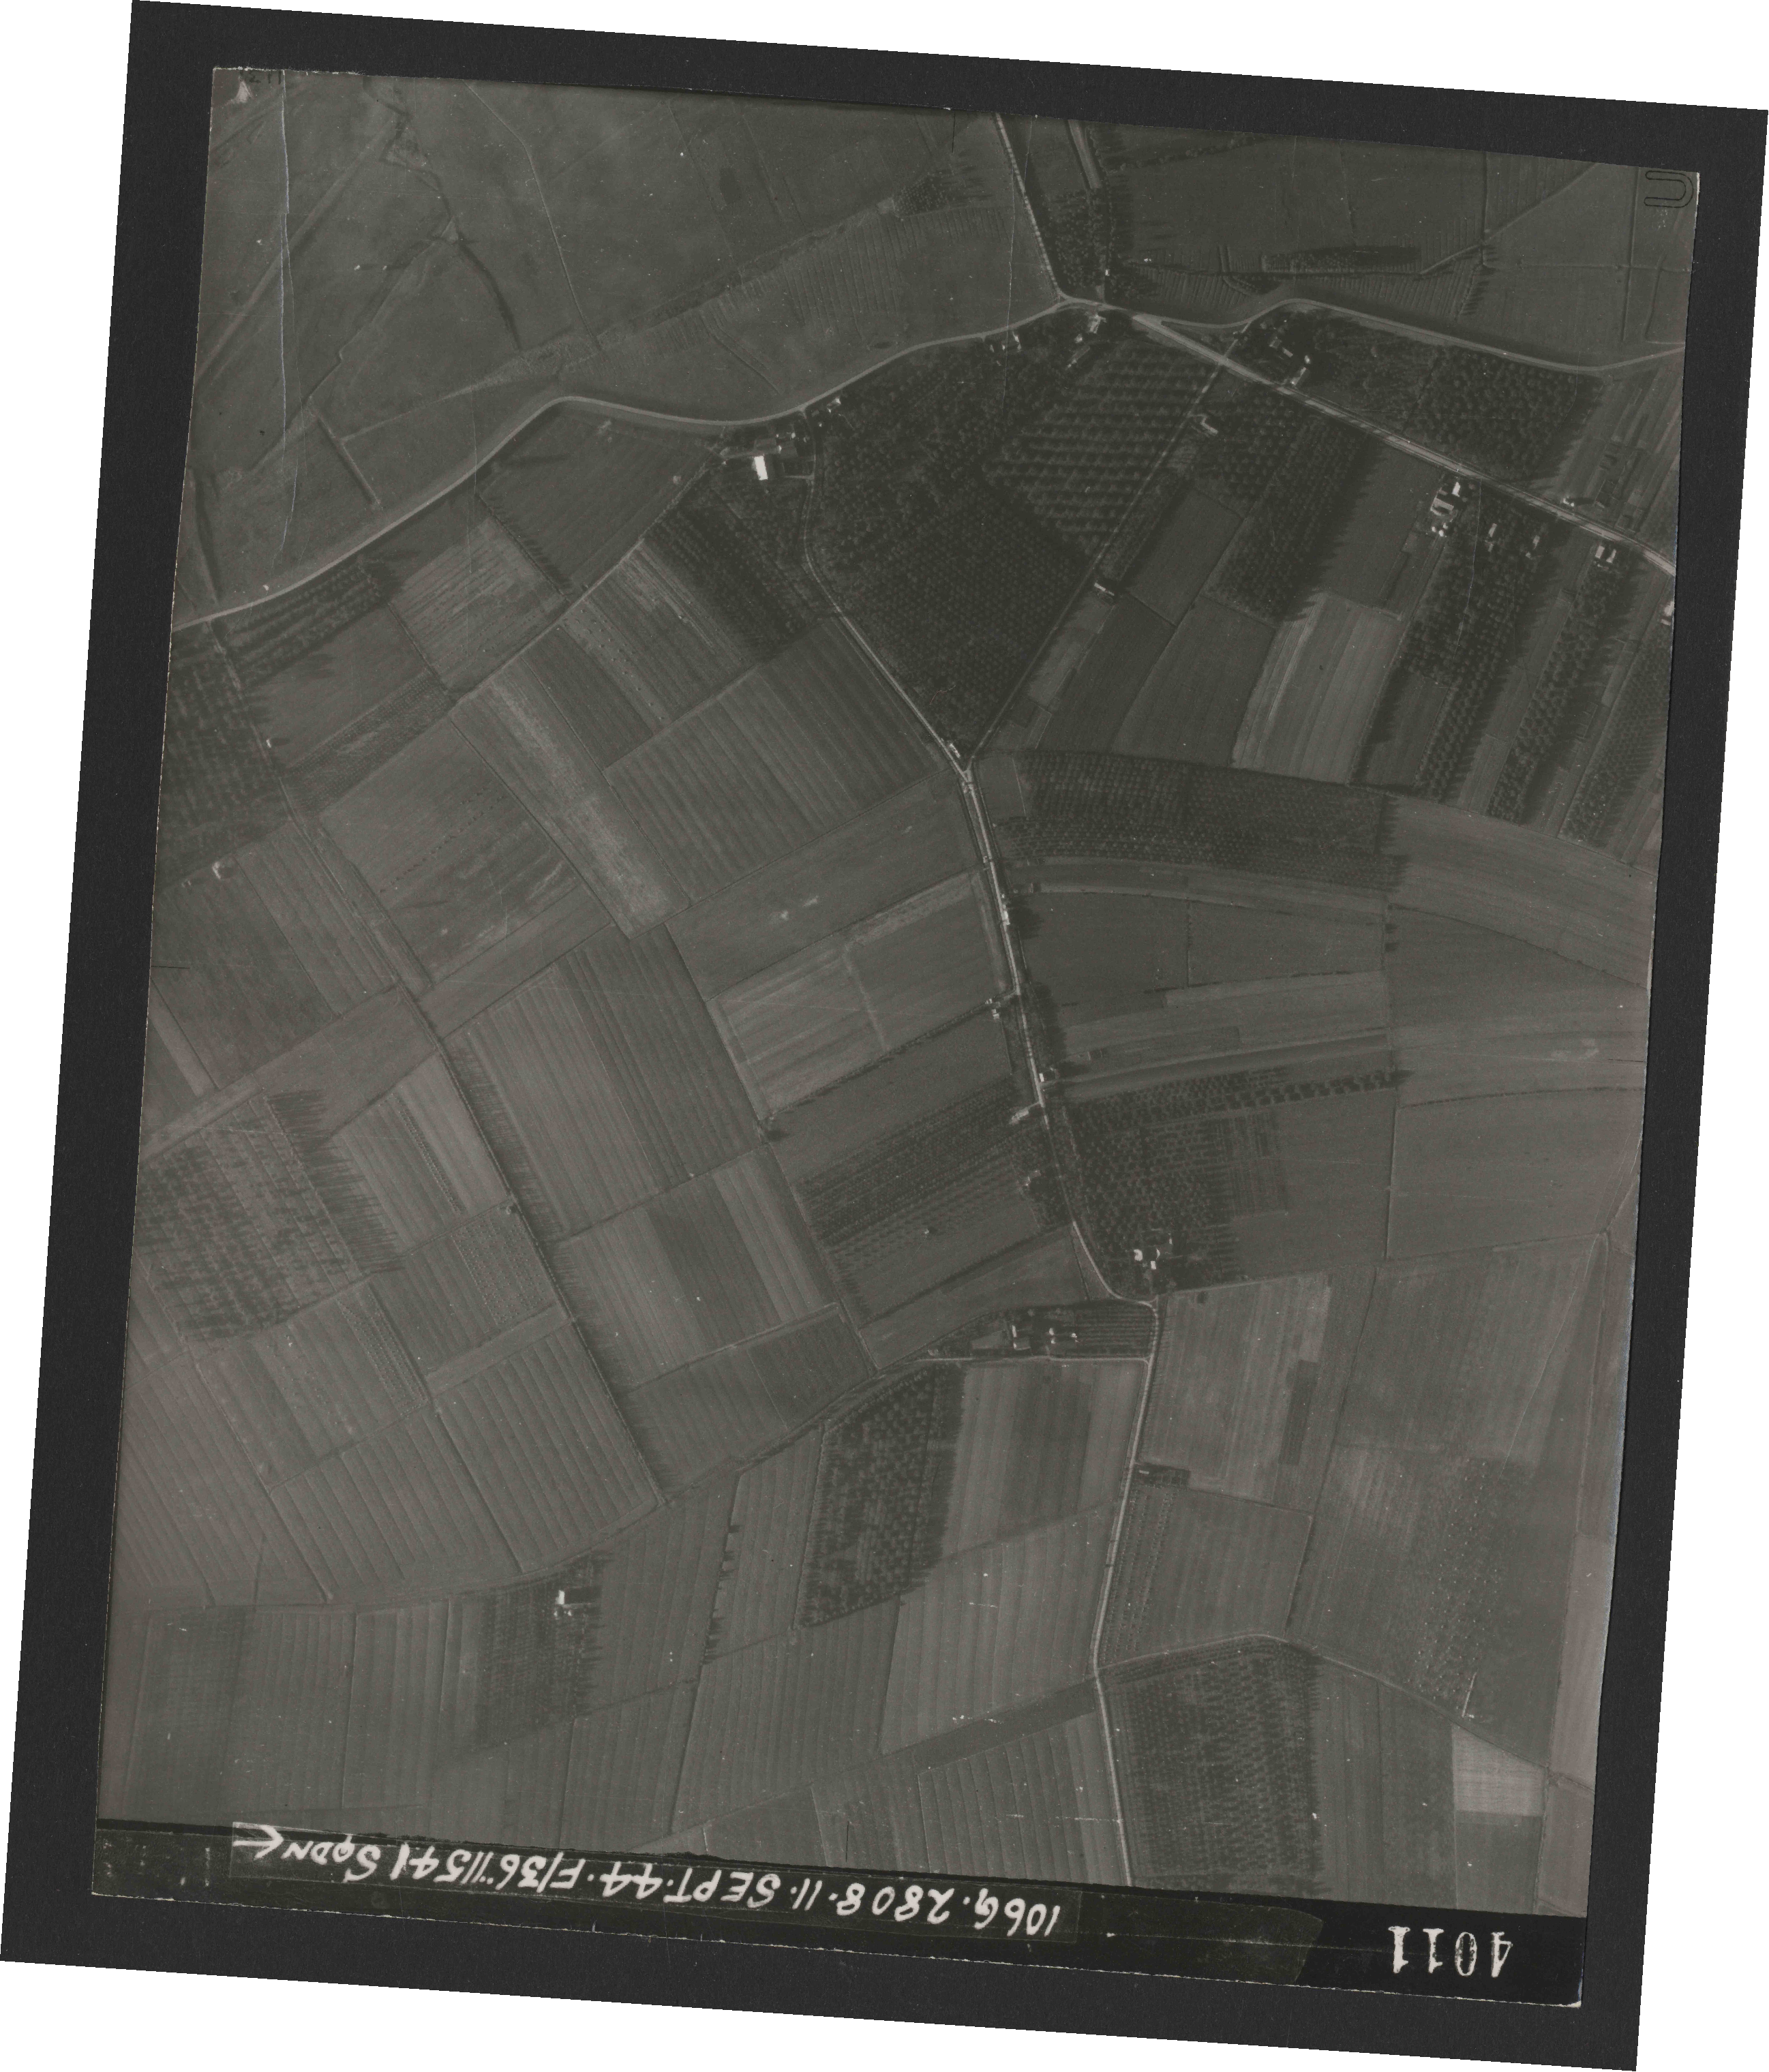 Collection RAF aerial photos 1940-1945 - flight 312, run 02, photo 4011